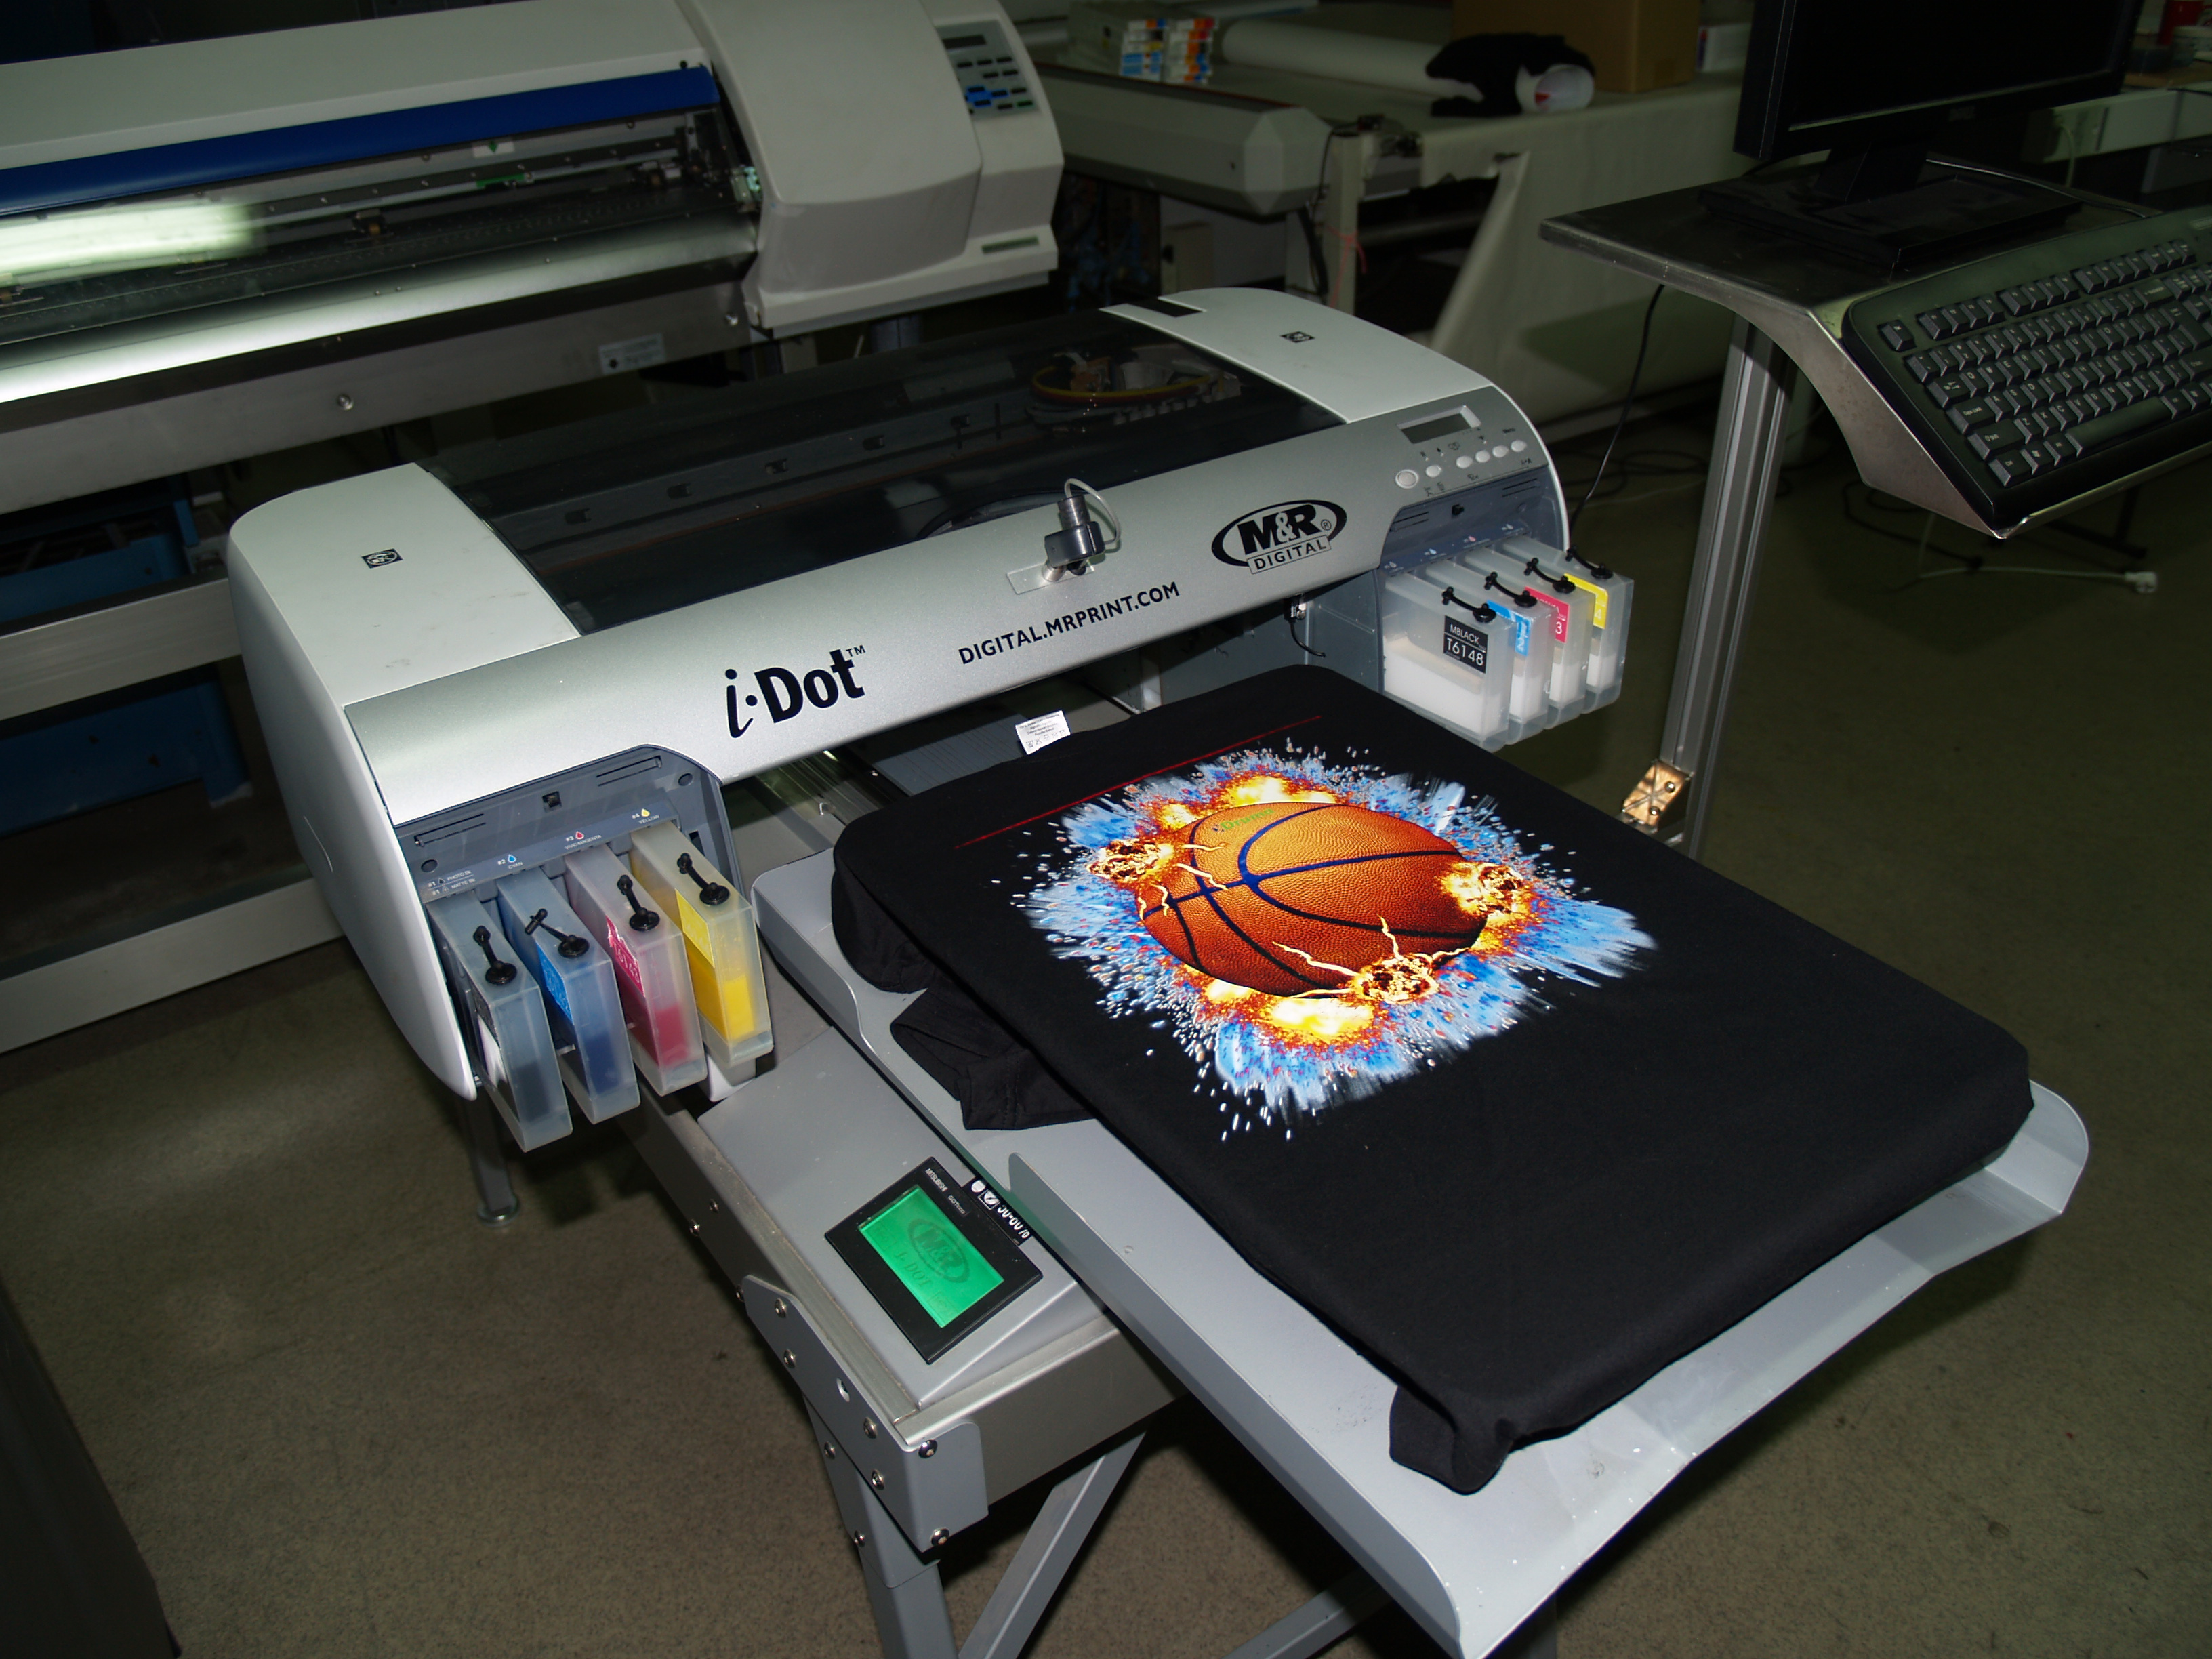 Used printer for t-shirts i-Dot 2100 - Exapro